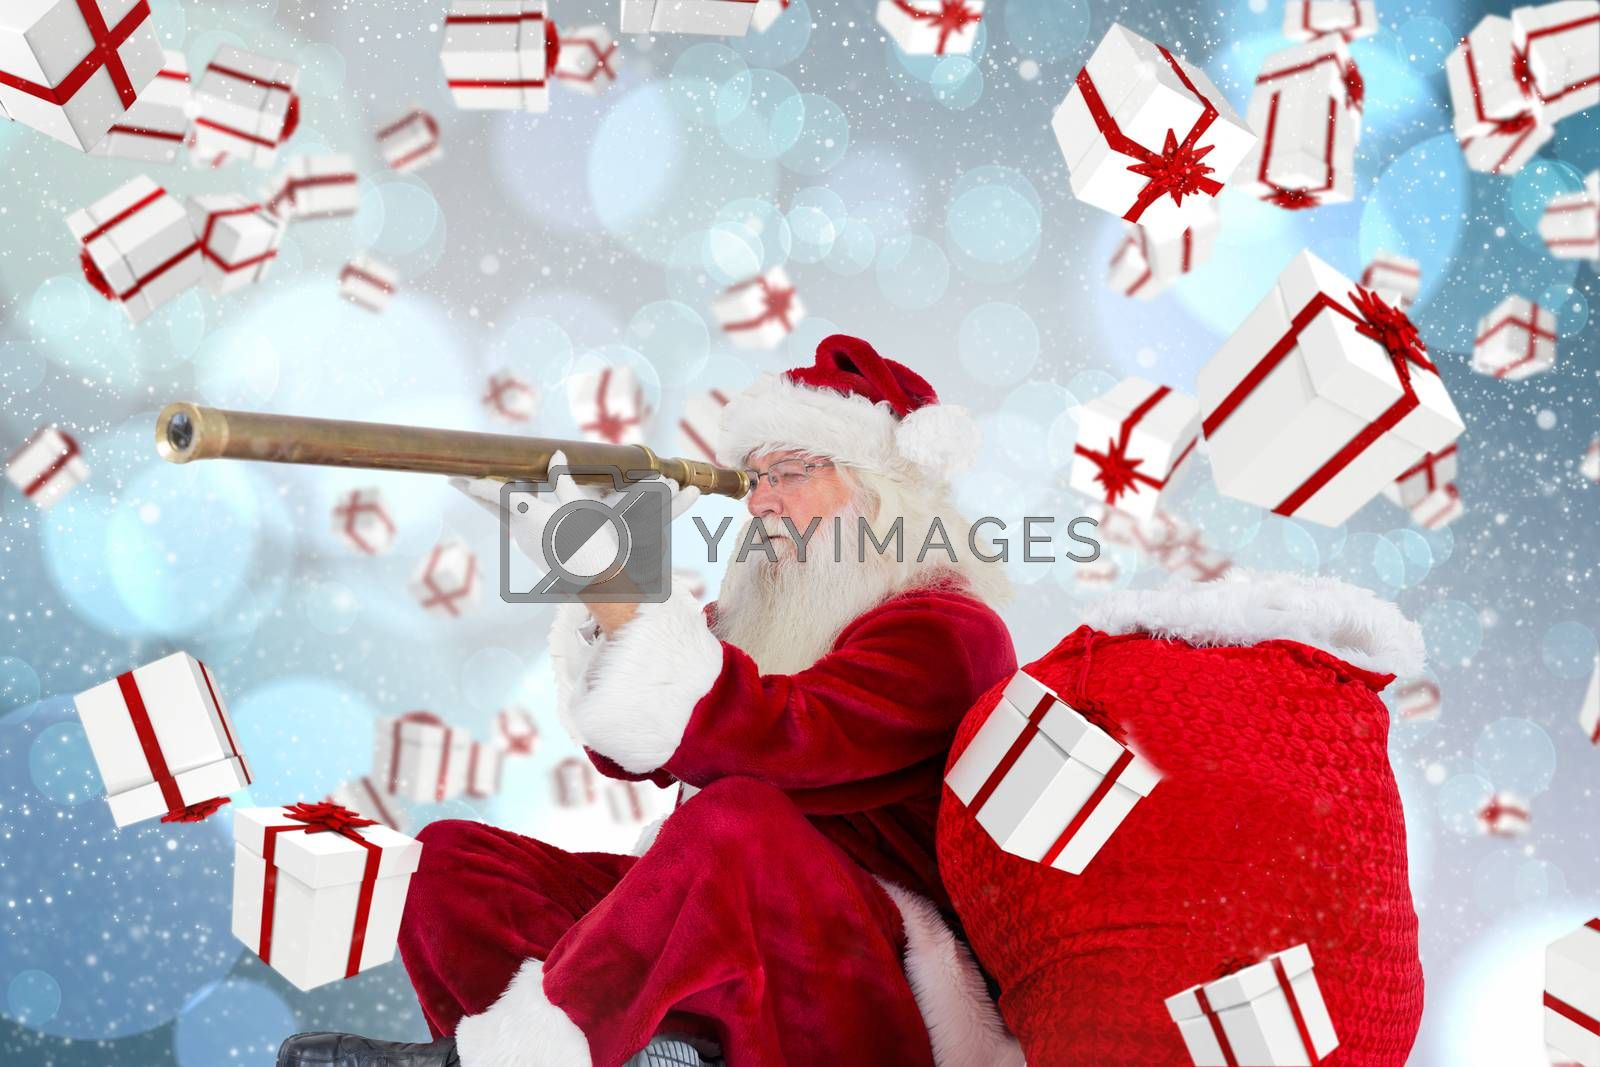 Santa claus looking through telescope against light glowing dots design pattern